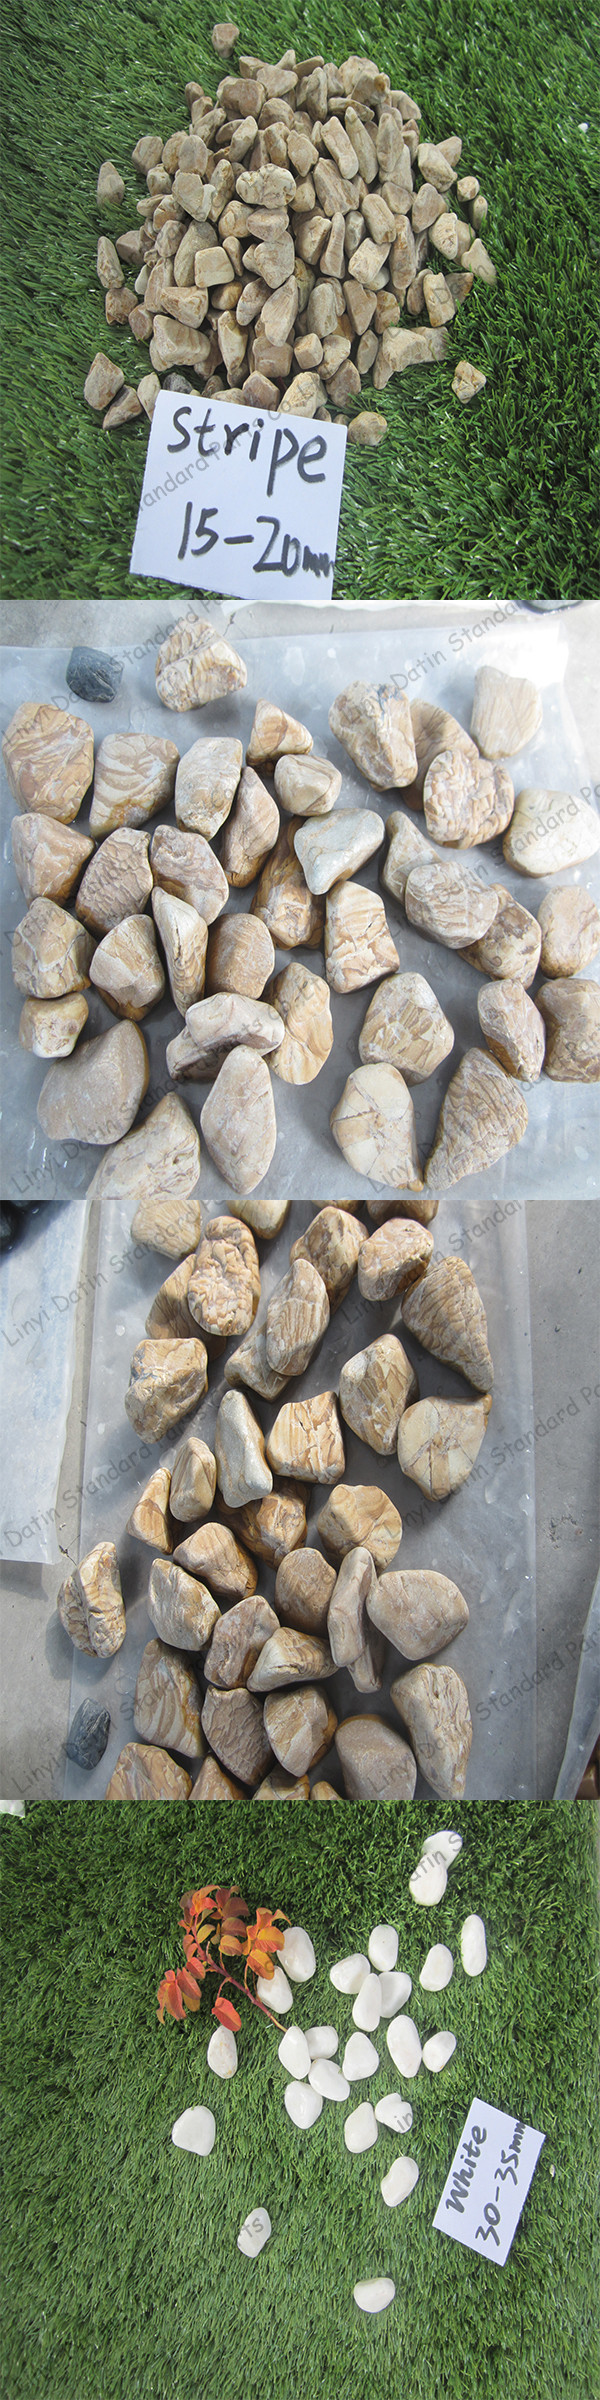 Landscaping stone large river rock stones cheap for Large garden stones for sale